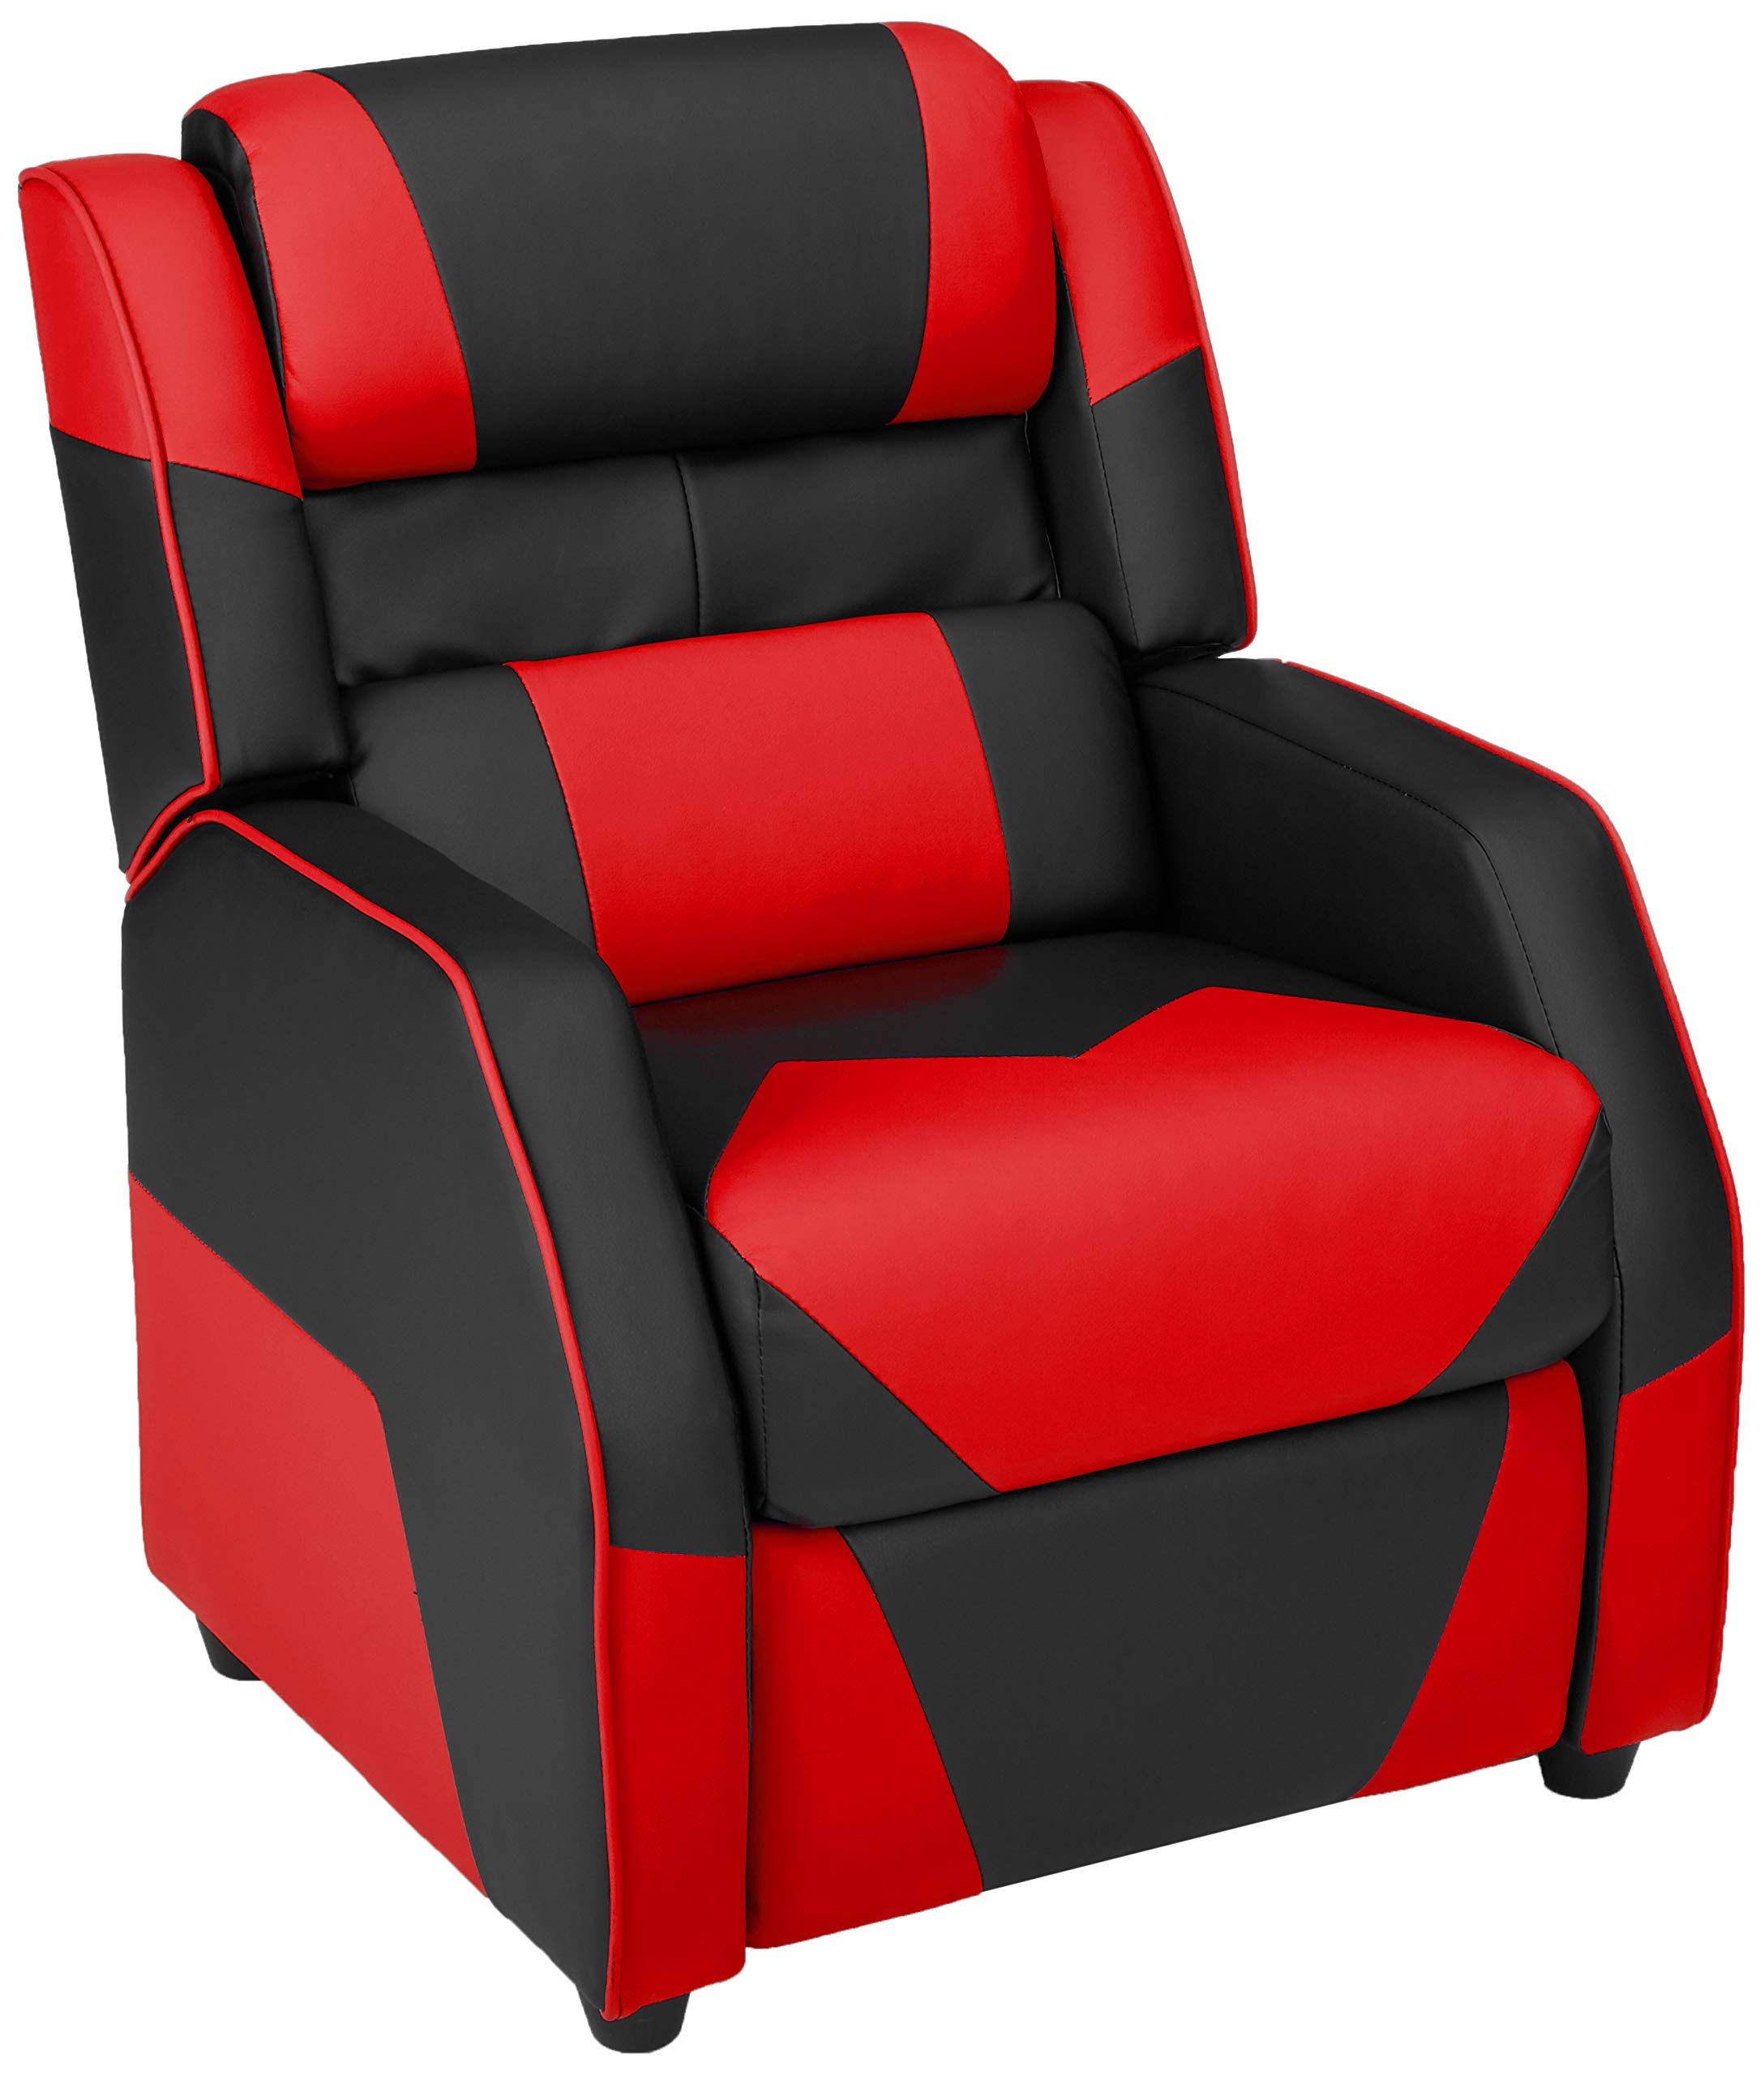 Amazon Basics Kids/Youth Gaming Recliner with Headrest and Back Pillow, 3+ Age Group, Black and Red